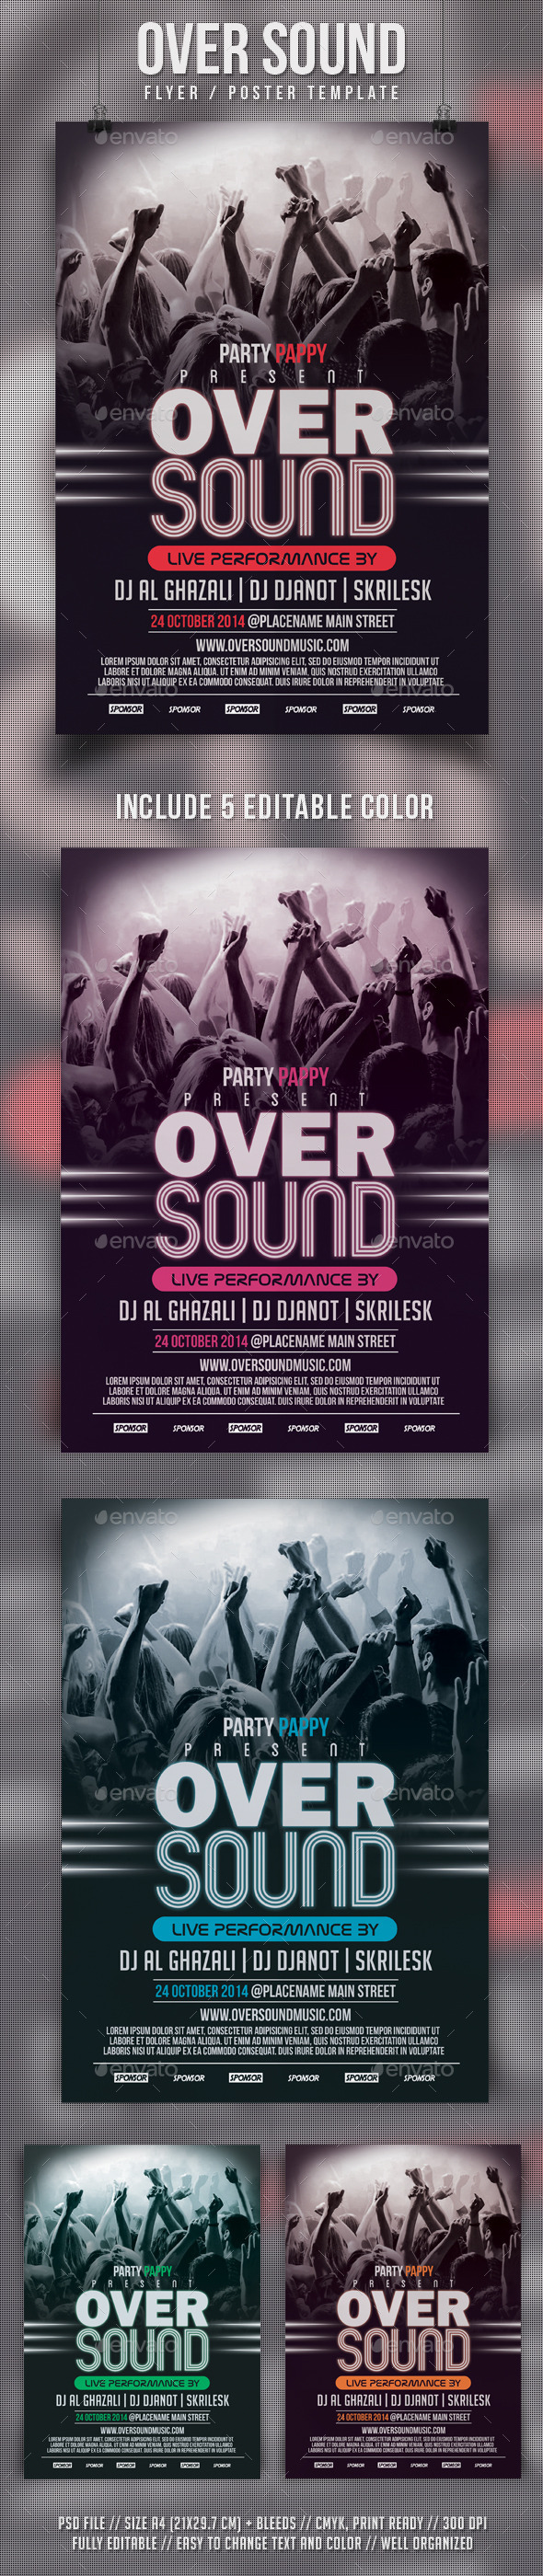 Oversound Flyer Template